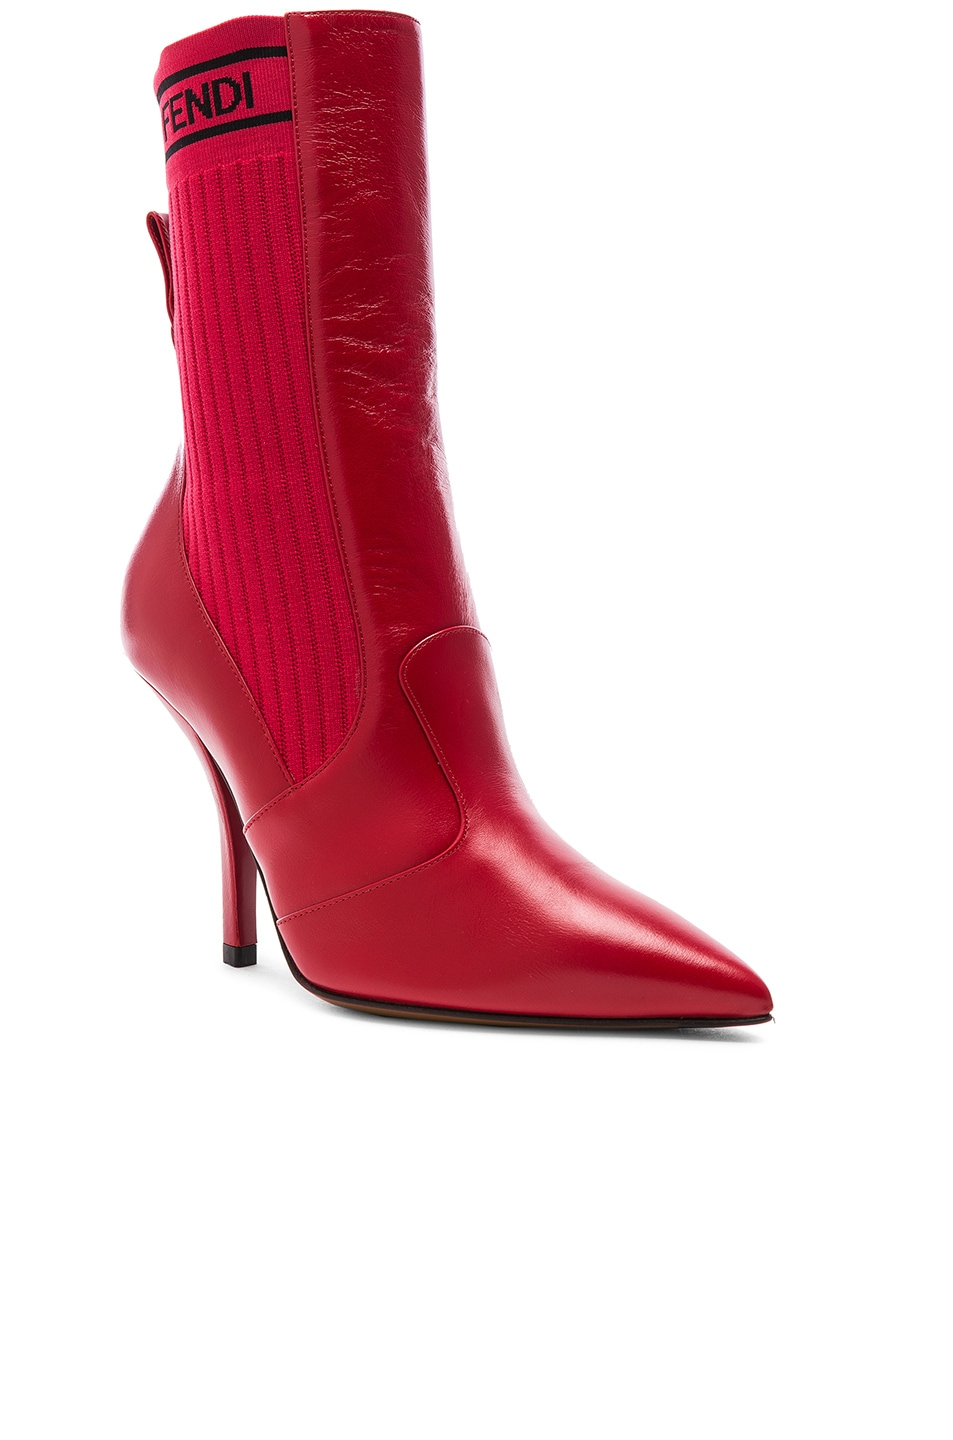 Image 2 of Fendi Leather & Knit Rockoko Mid Calf Boots in Red